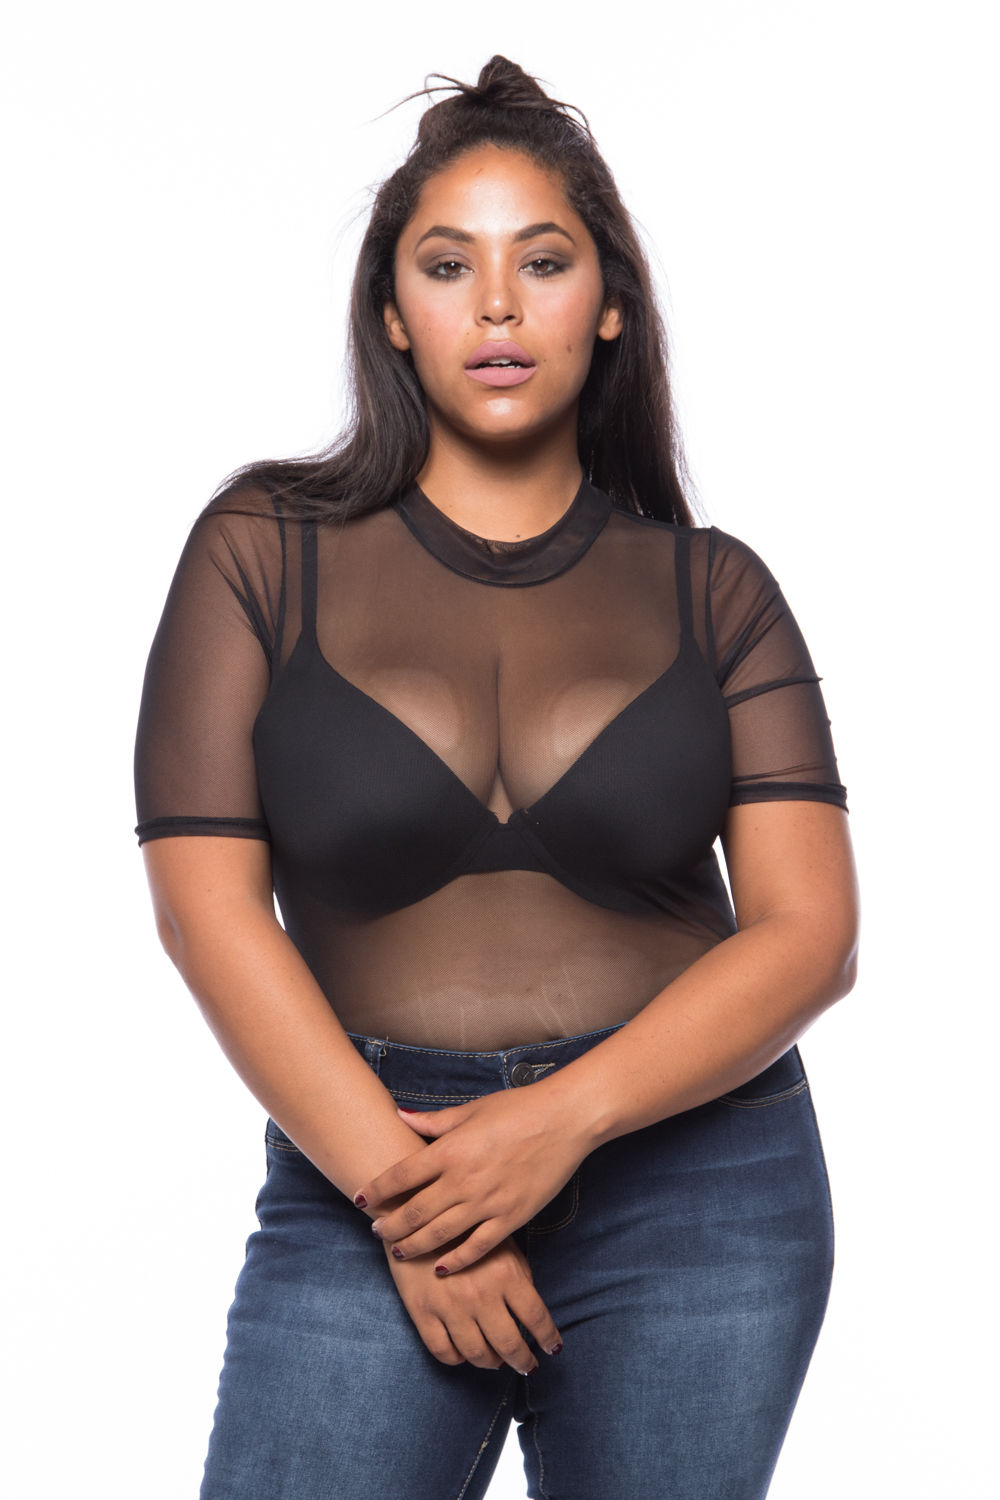 Womens Plus Size Sexy Sheer Color Short Sleeves Bodysuit Blouse Top B2078ES